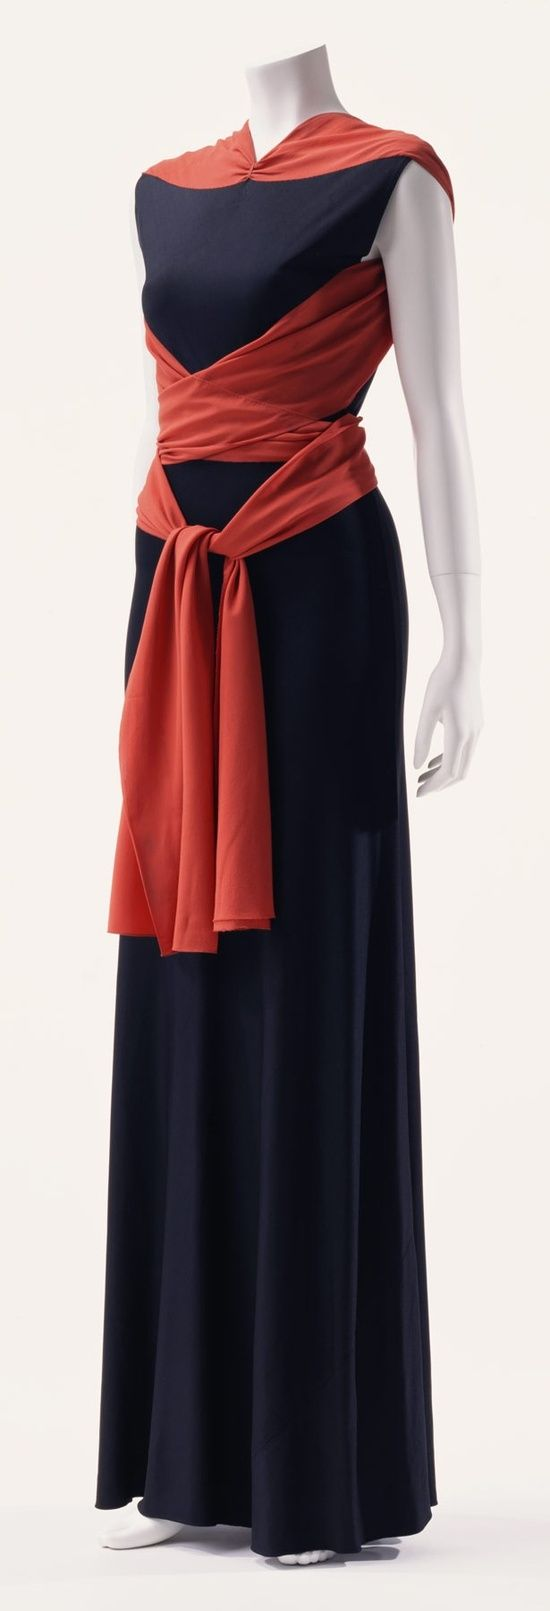 Vionnet Dress - c- 1933 - by Madeleine Vionnet, France - Black rayon jersey one-piece dress; vermillion silk crepe sash; bias cut